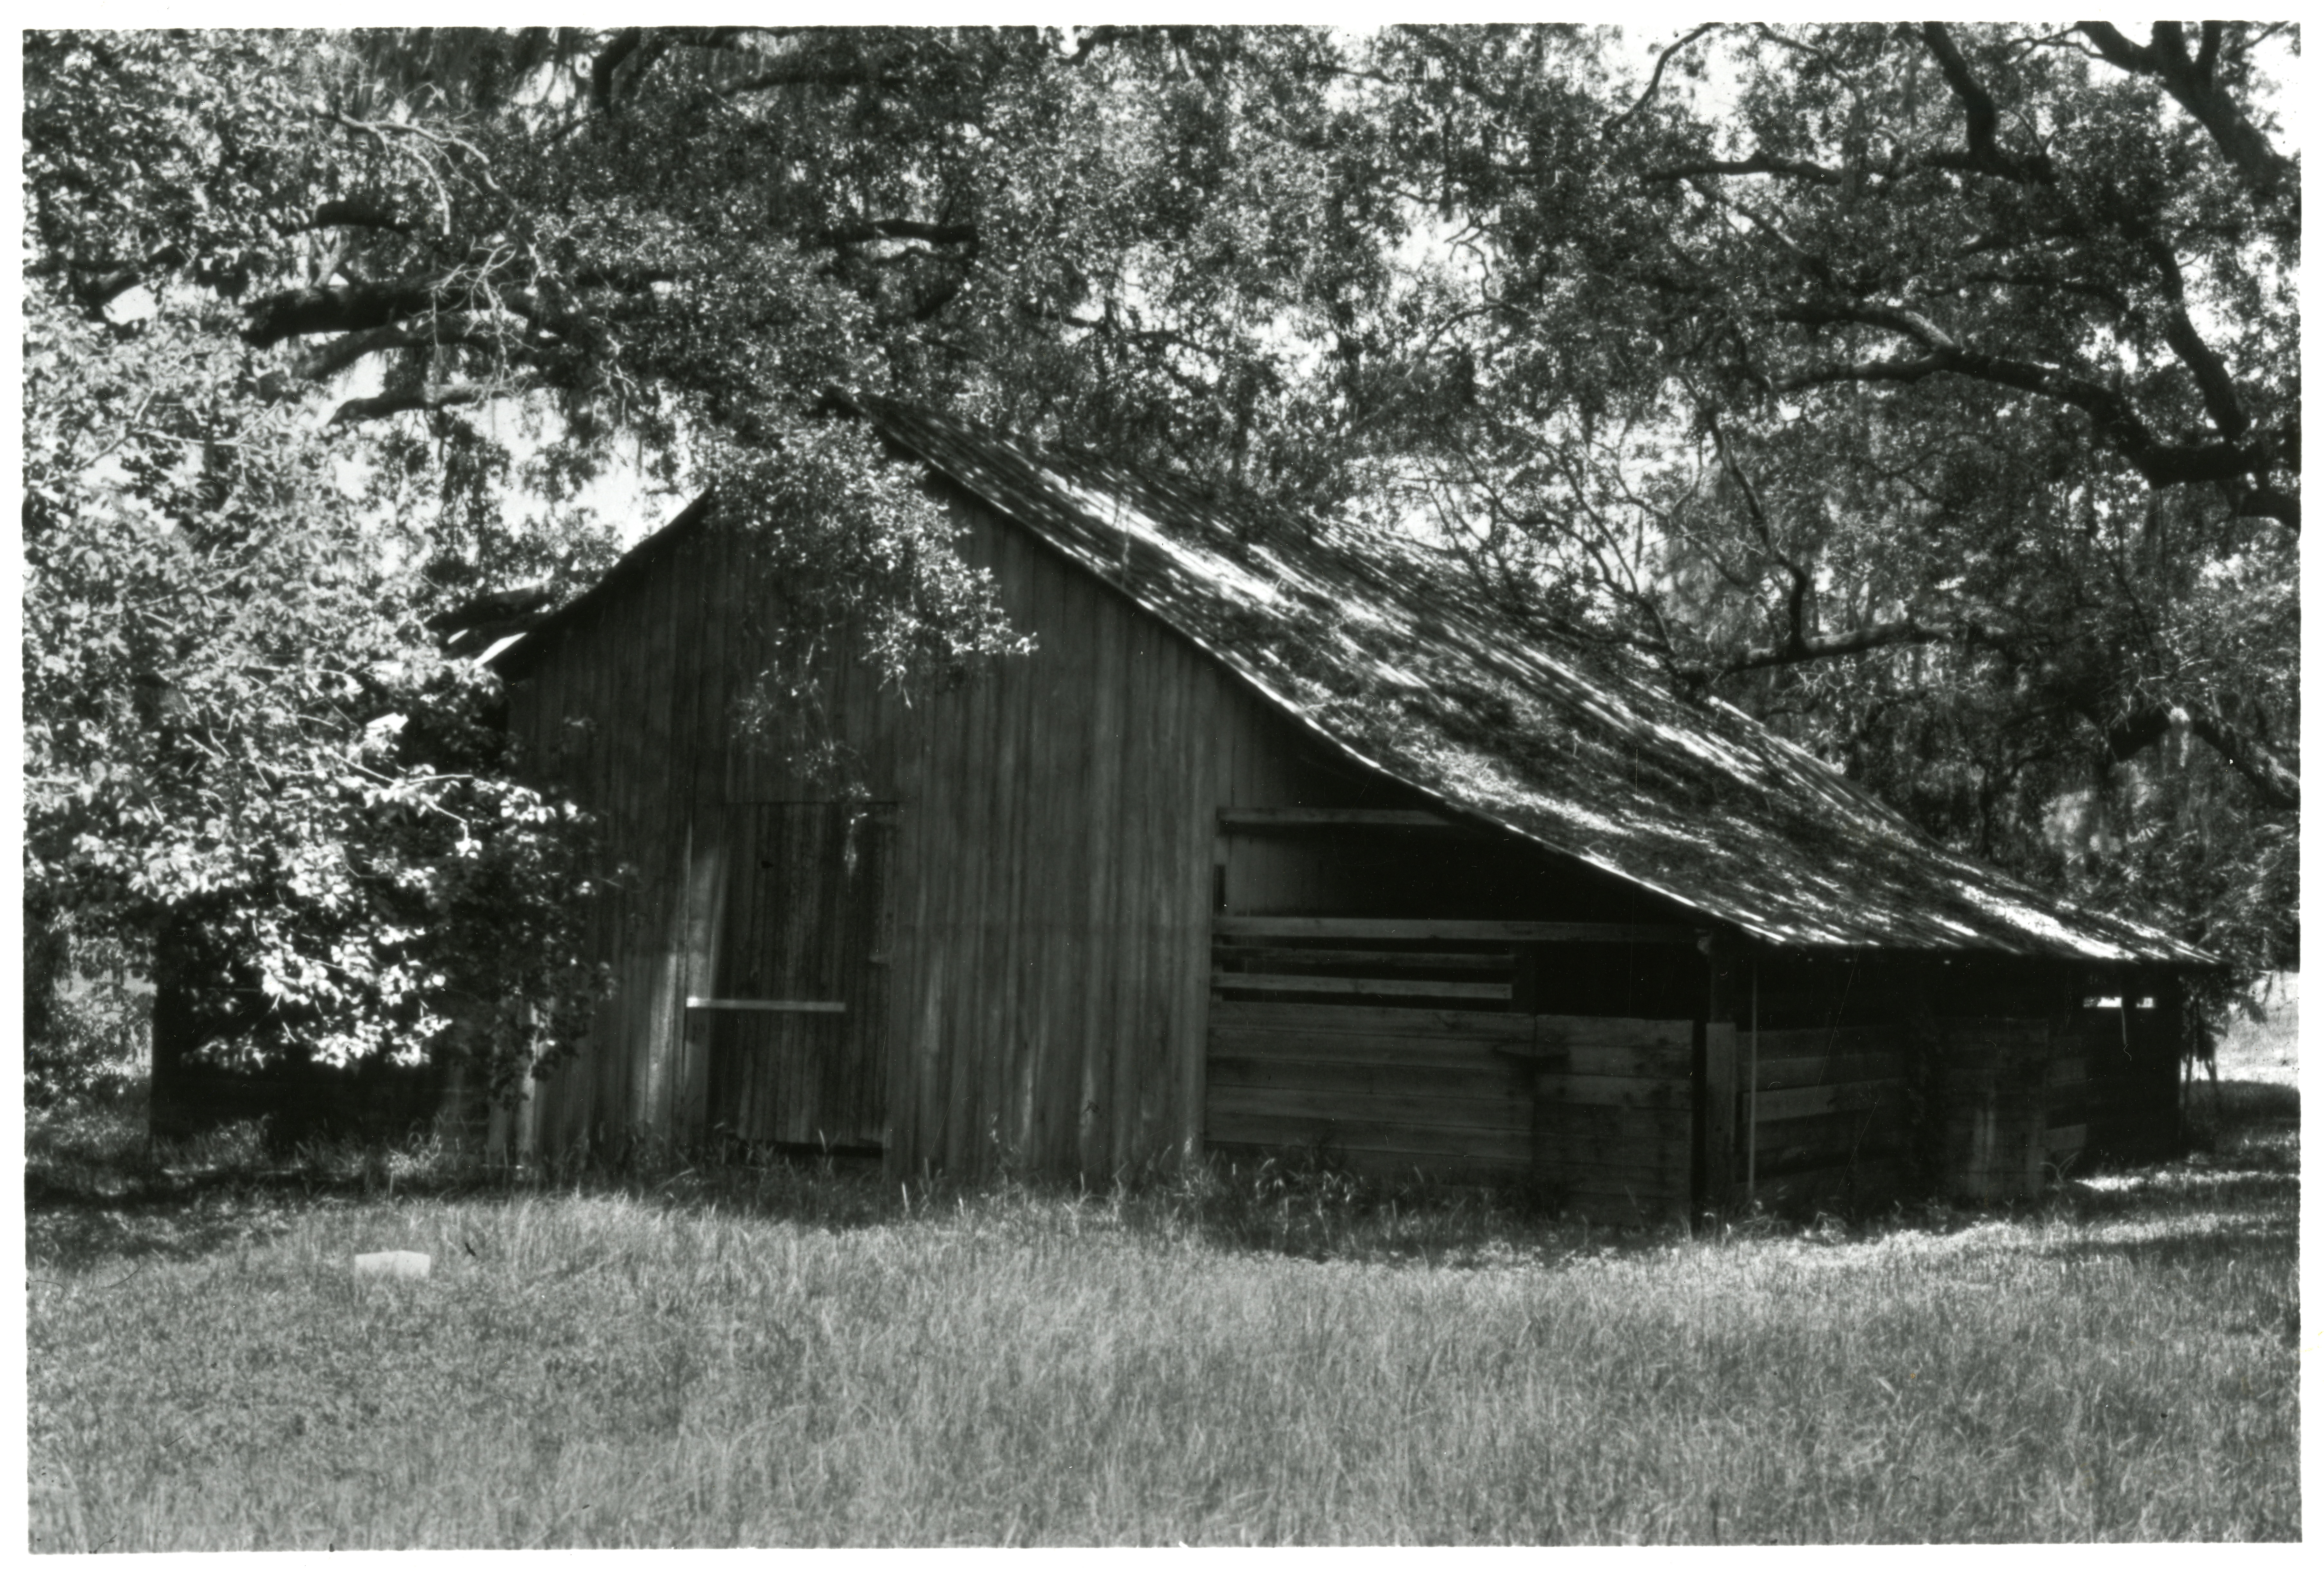 Lowe Barn before the move to Heritage Village, Largo, Florida, circa 1970.